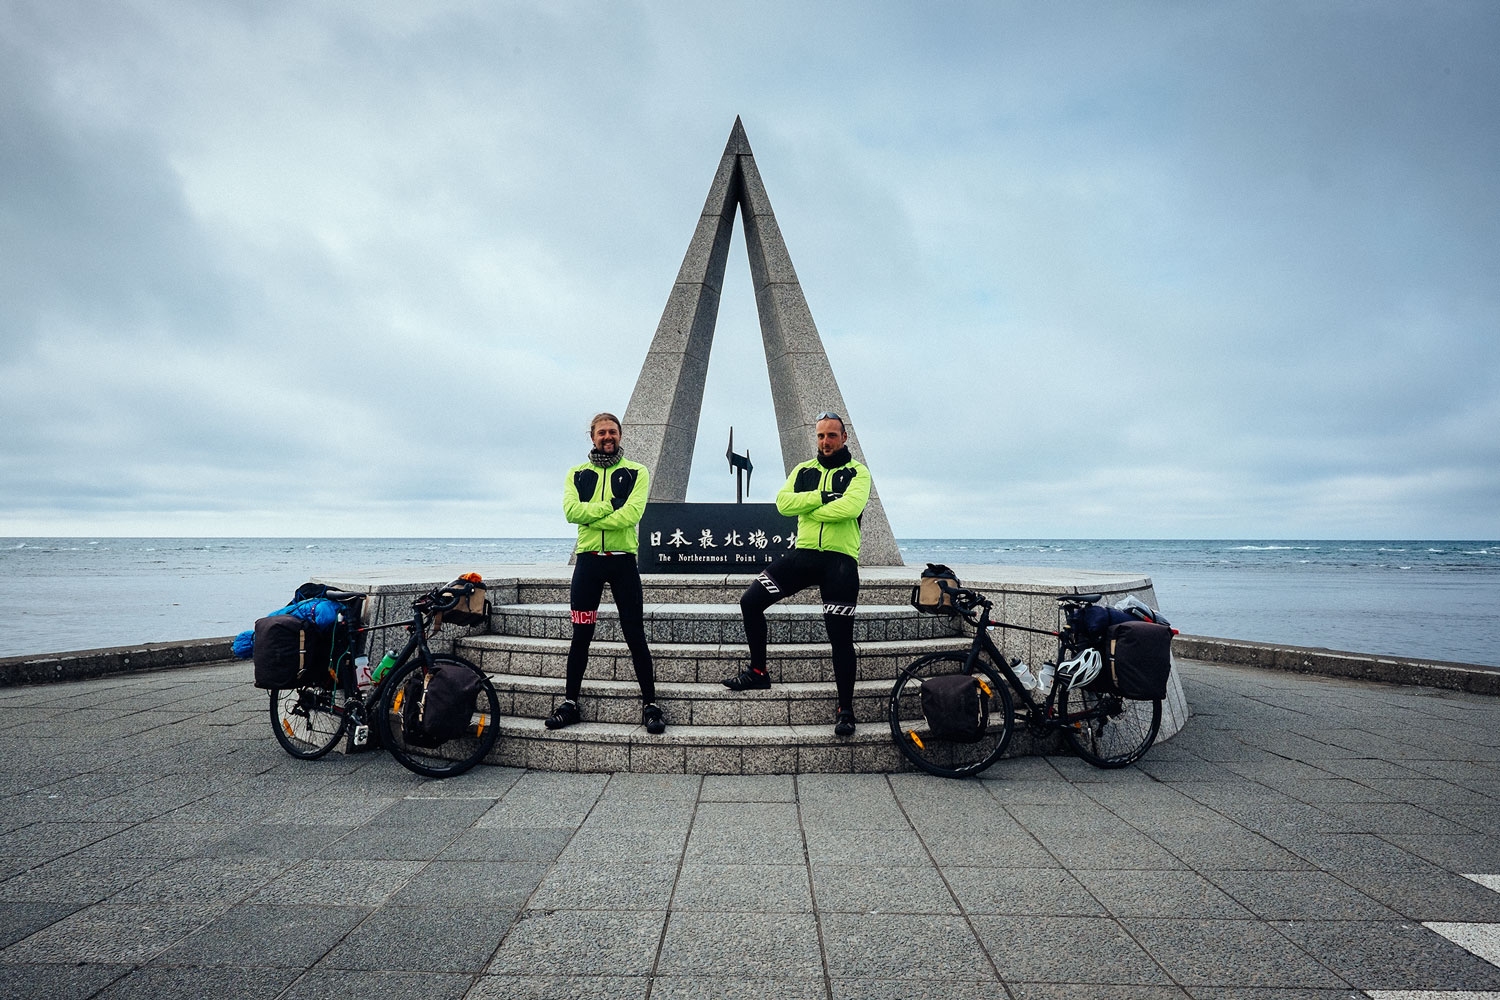 Me and Sio at the northernmost point of Japan. The end of unCOMMON:Wheels